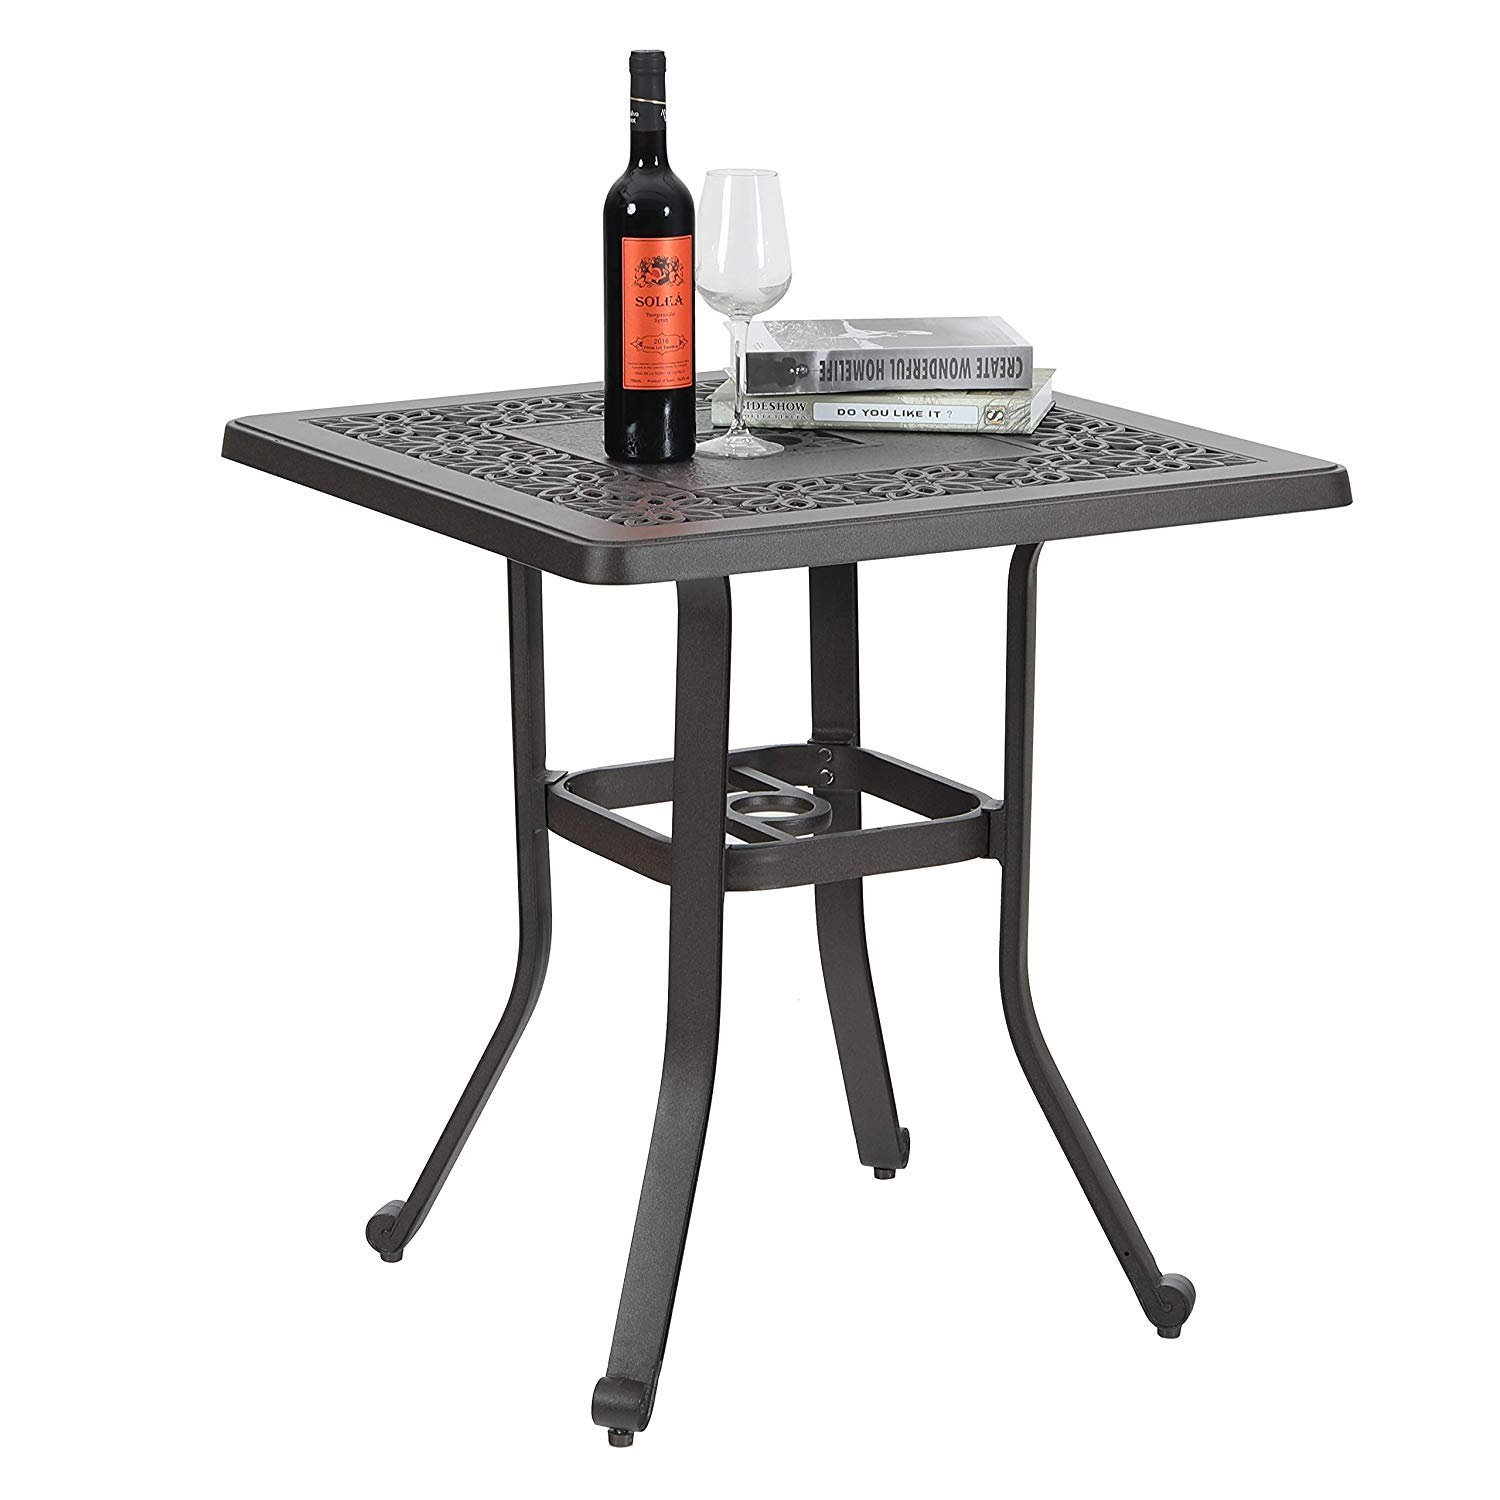 Patio Cast Aluminum 27.5 Bistro Square Dining Table with Umbrella Hole and Frosted Surface